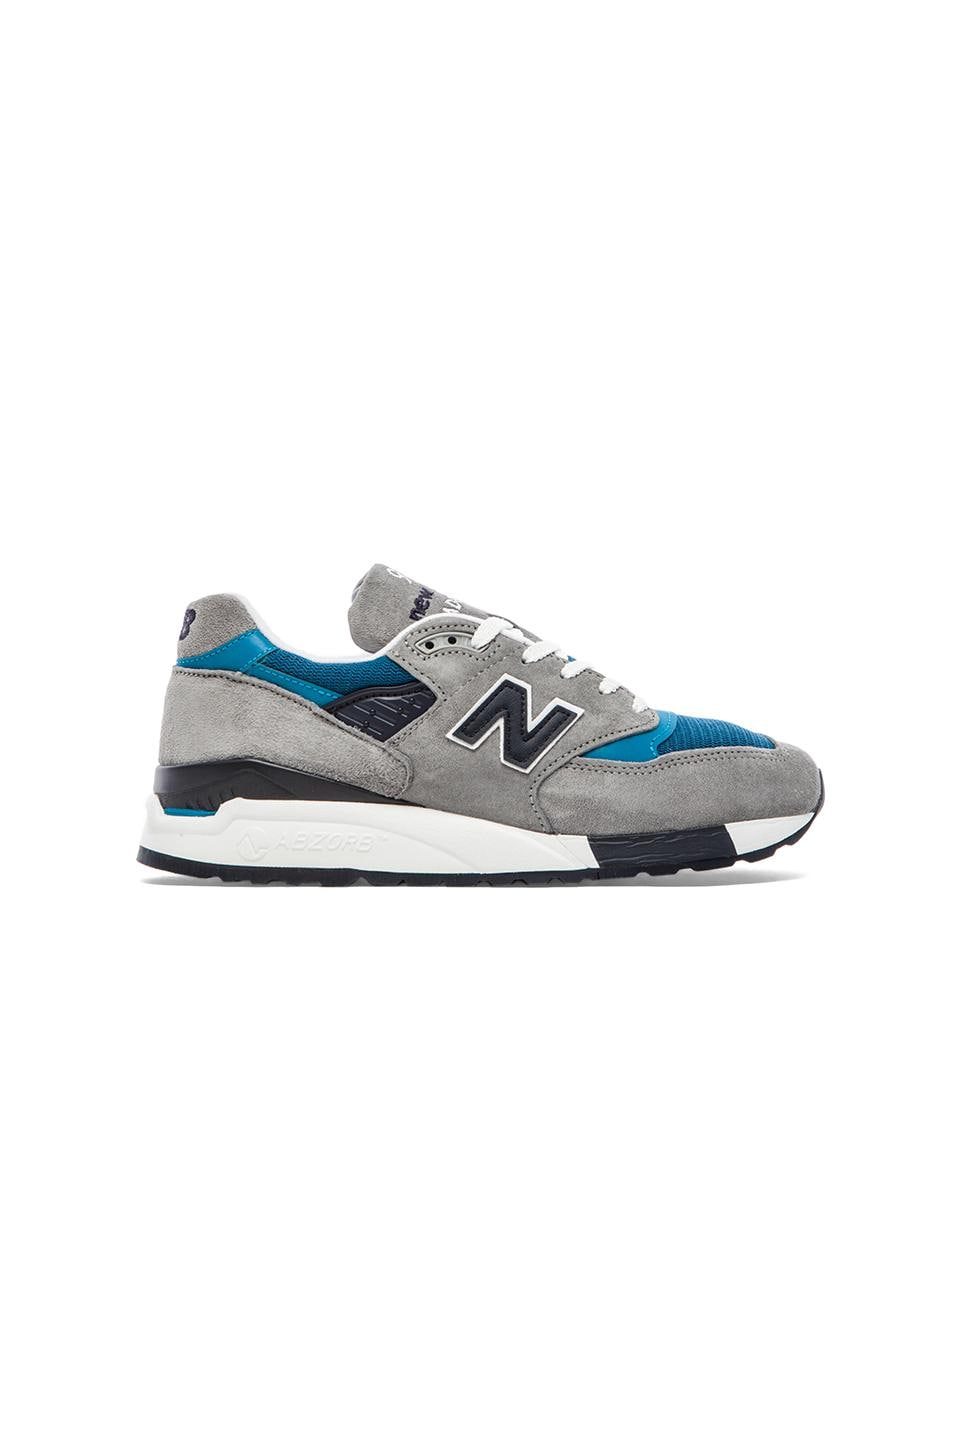 New Balance Made in USA M998 in Grey/Blue